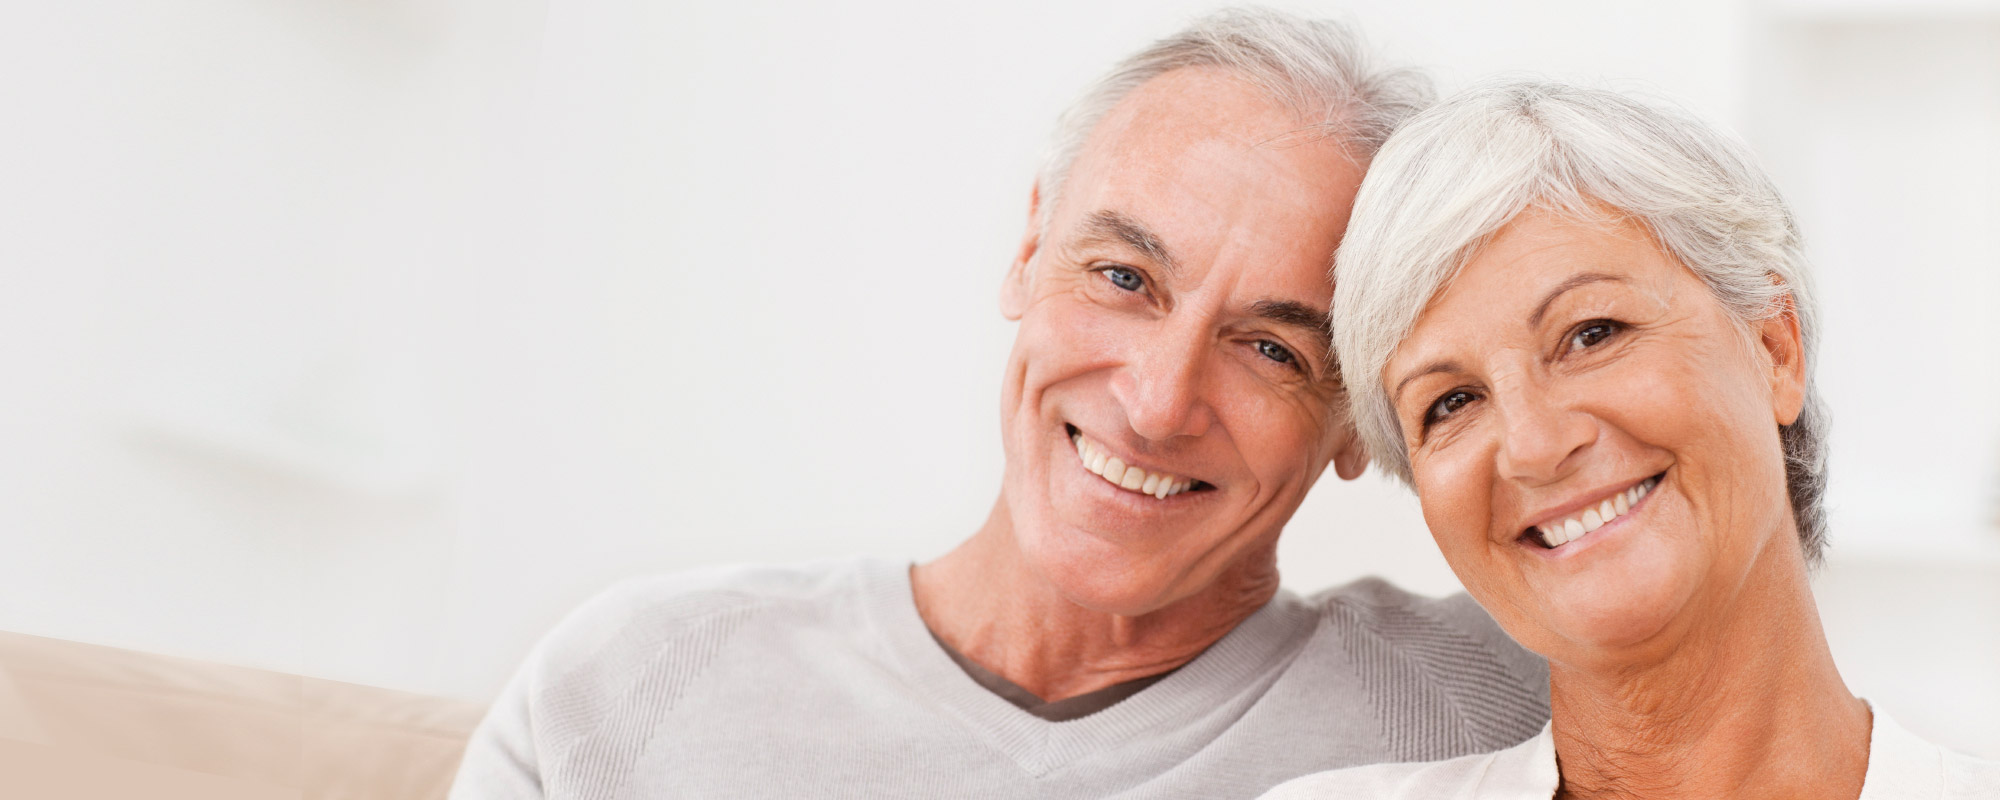 Perth-Dental-Implant-Dentists-mature-age